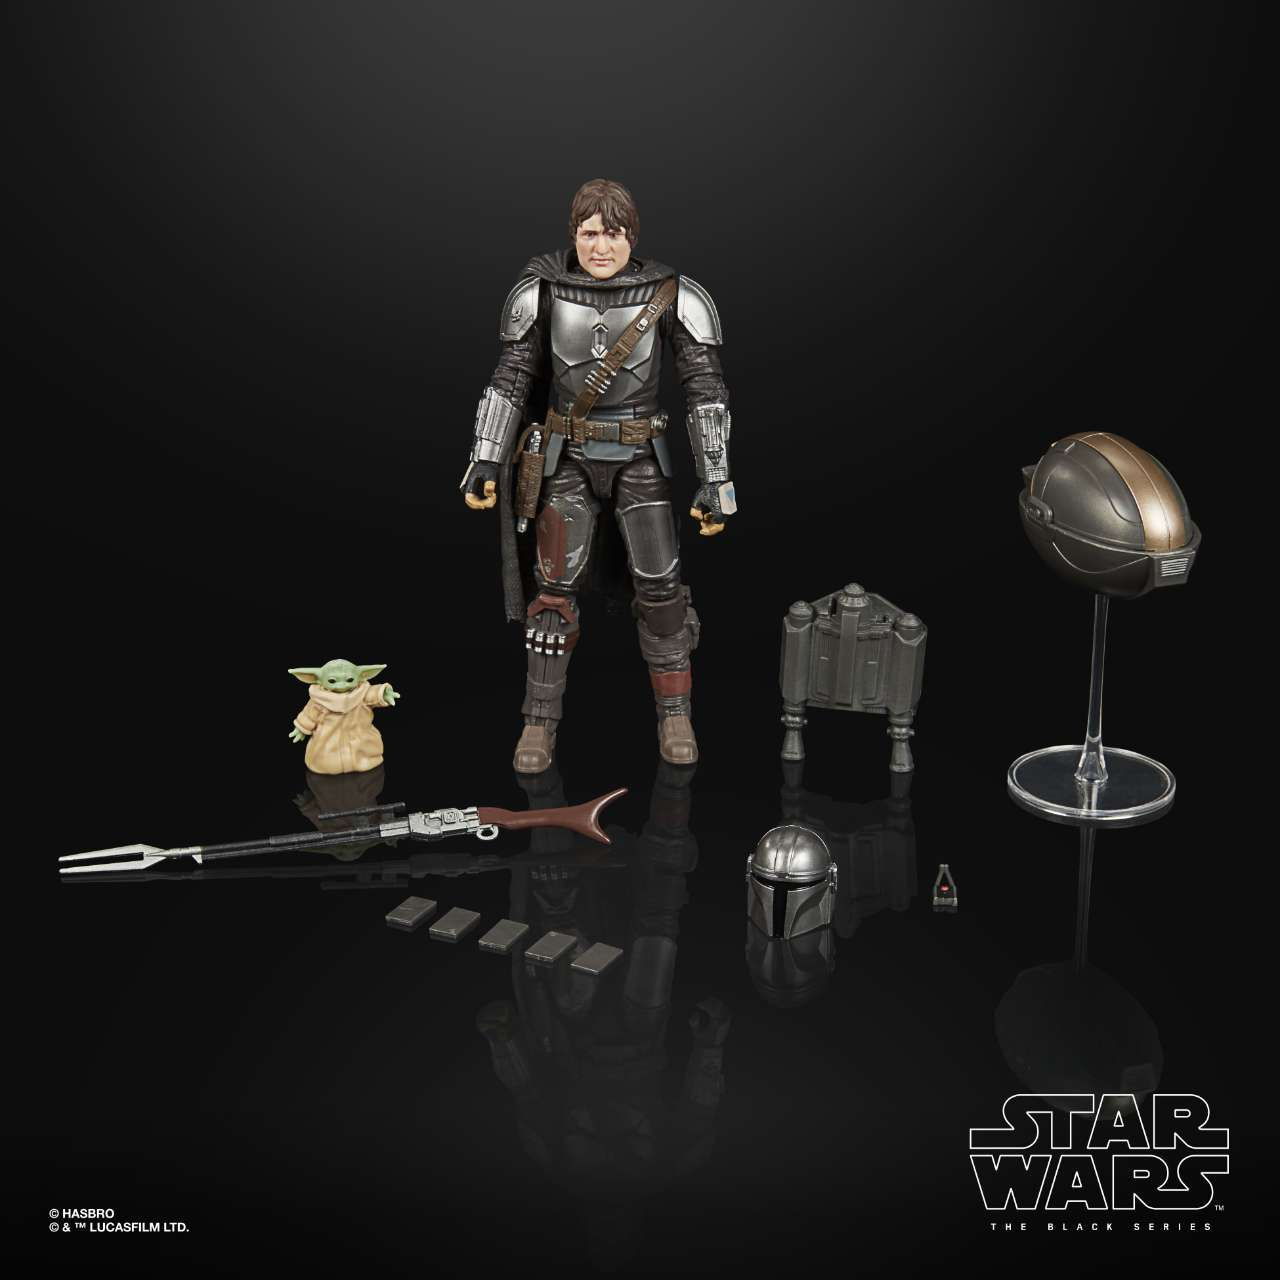 STAR WARS THE BLACK SERIES 6-INCH DIN DJARIN (THE MANDALORIAN) & THE CHILD BUILD-UP PACK - oop (7)